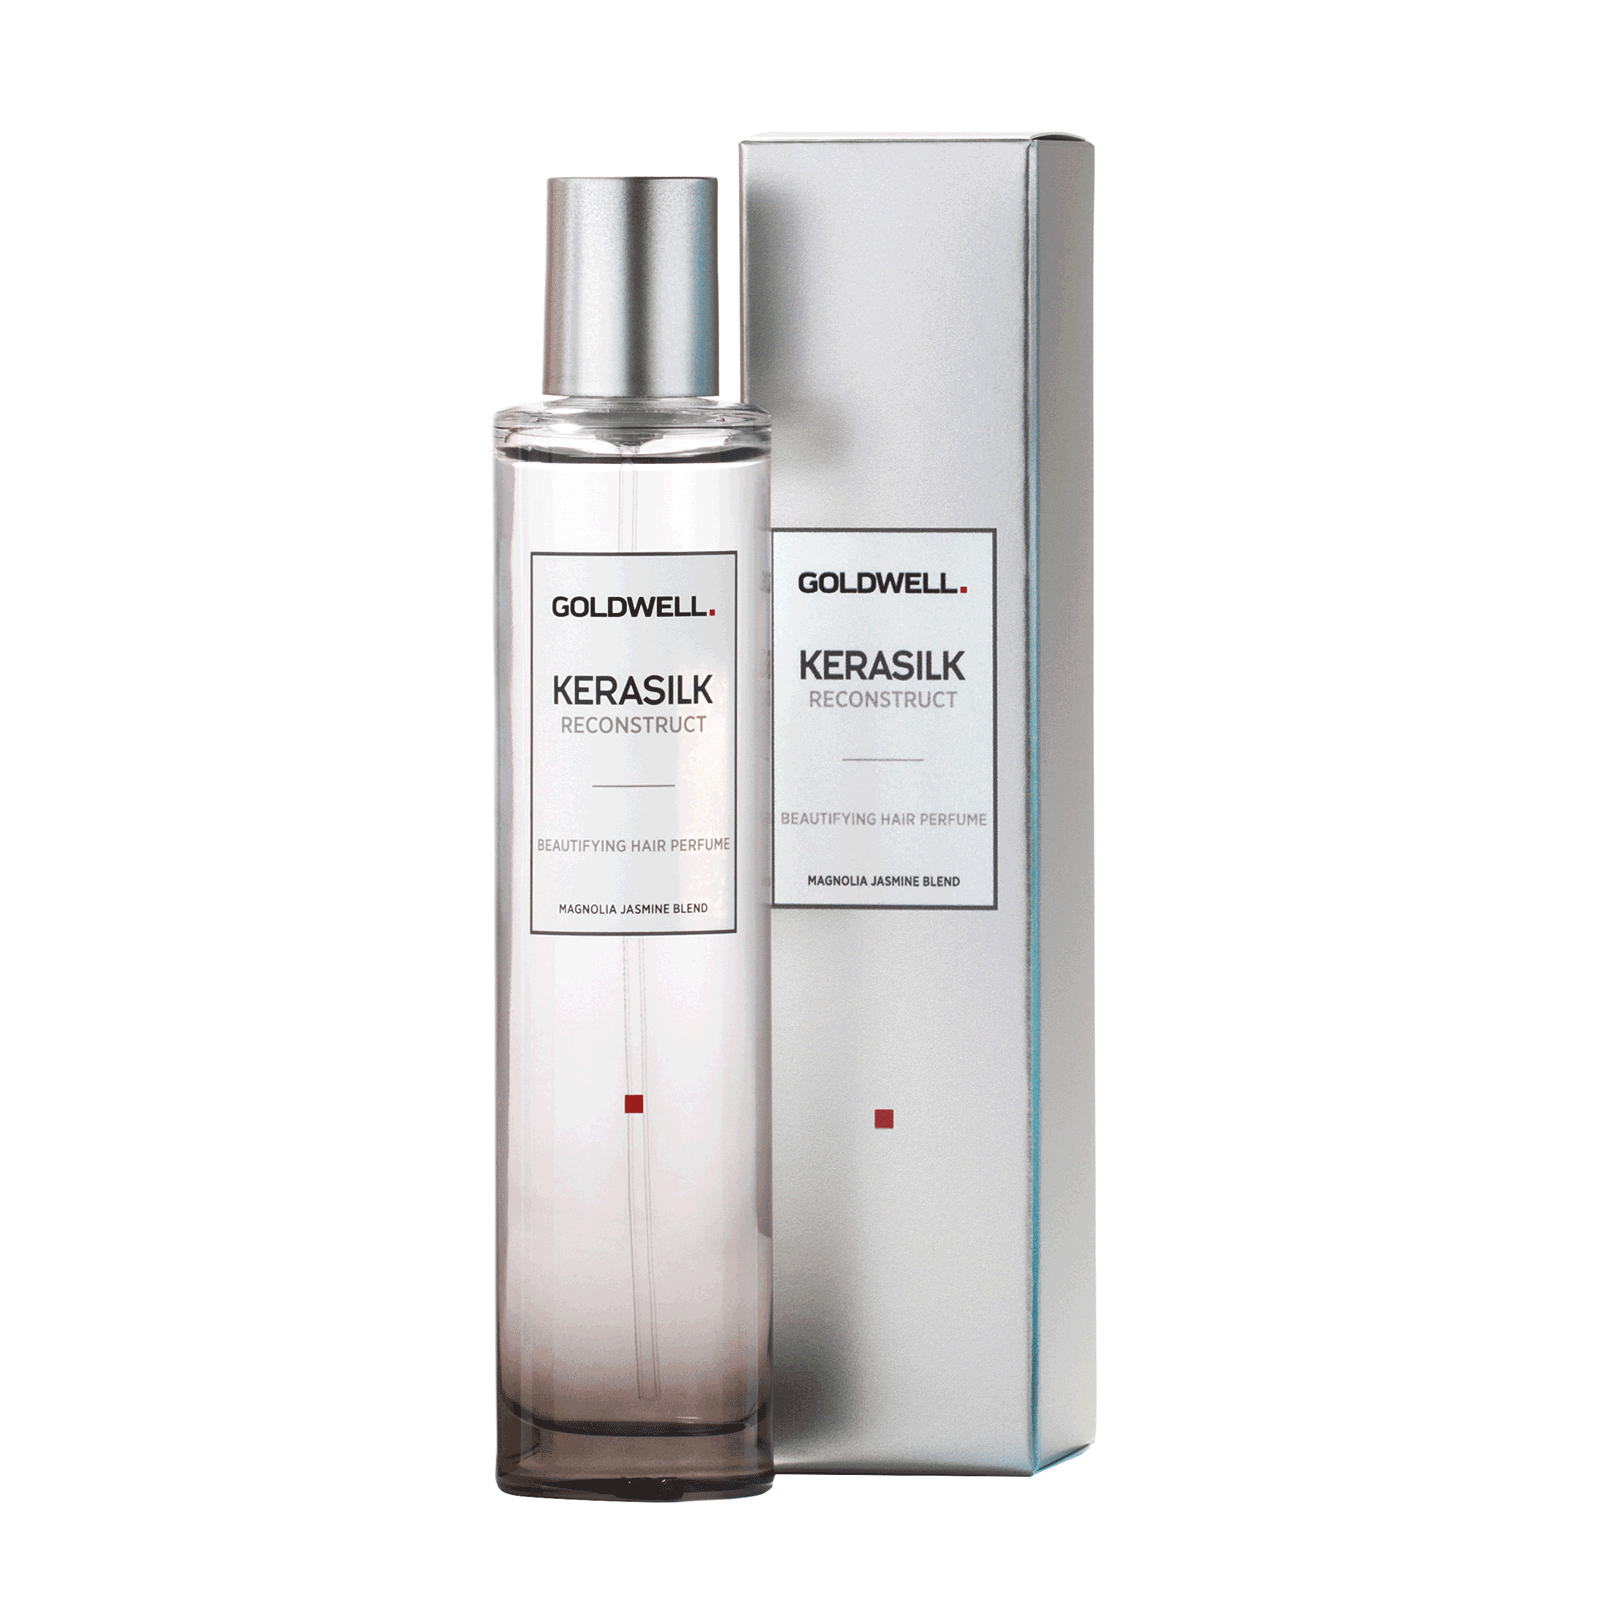 Kerasilk - Reconstruct Beautifying Hair Perfume Travel Size